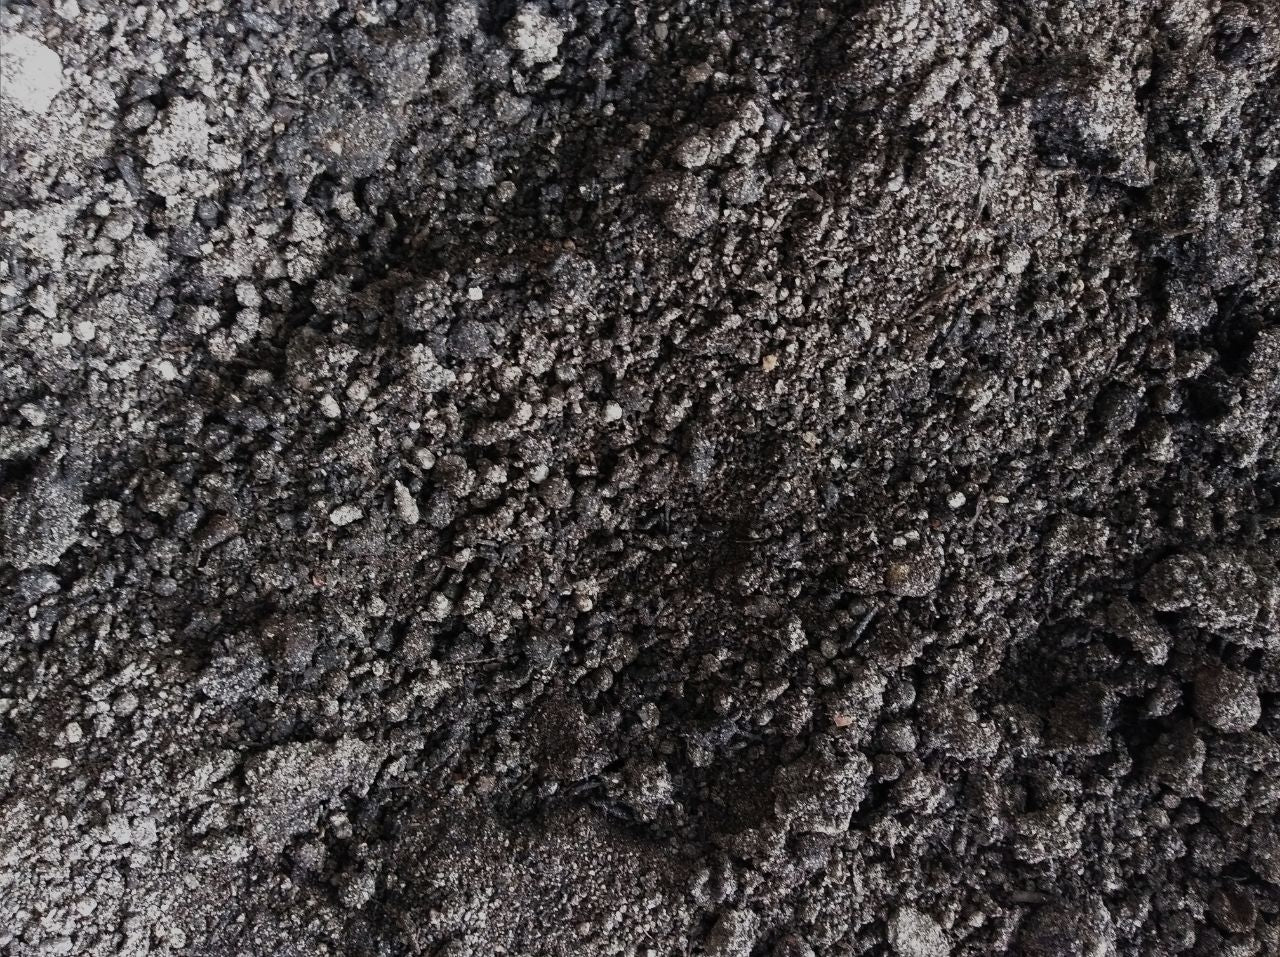 Garden Soil | Provides Natural Nutrients for Soil | Singapore Farm